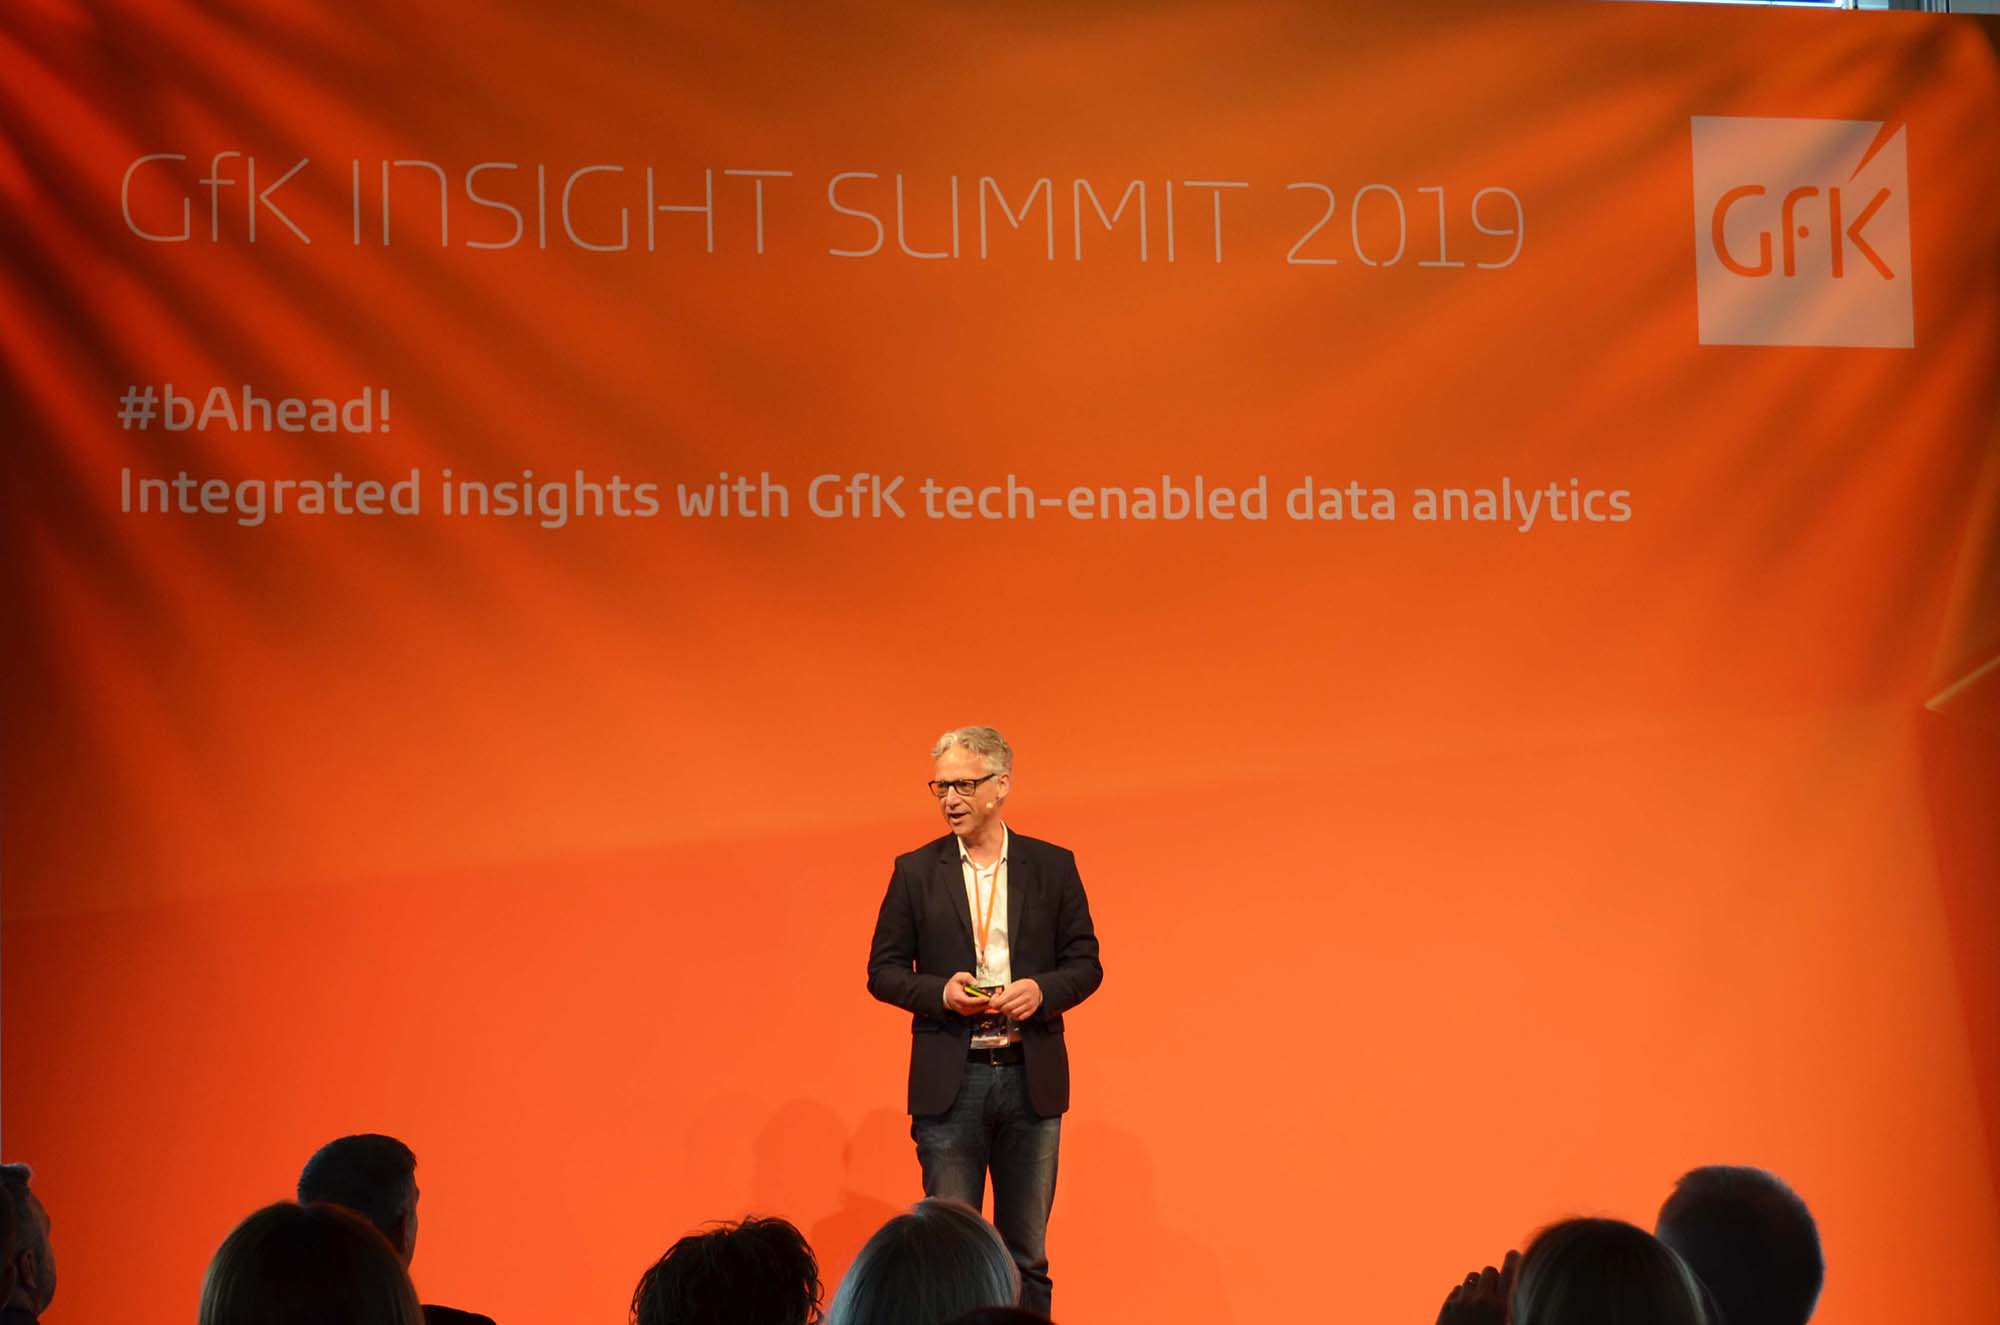 GfK Insight Summit 2019